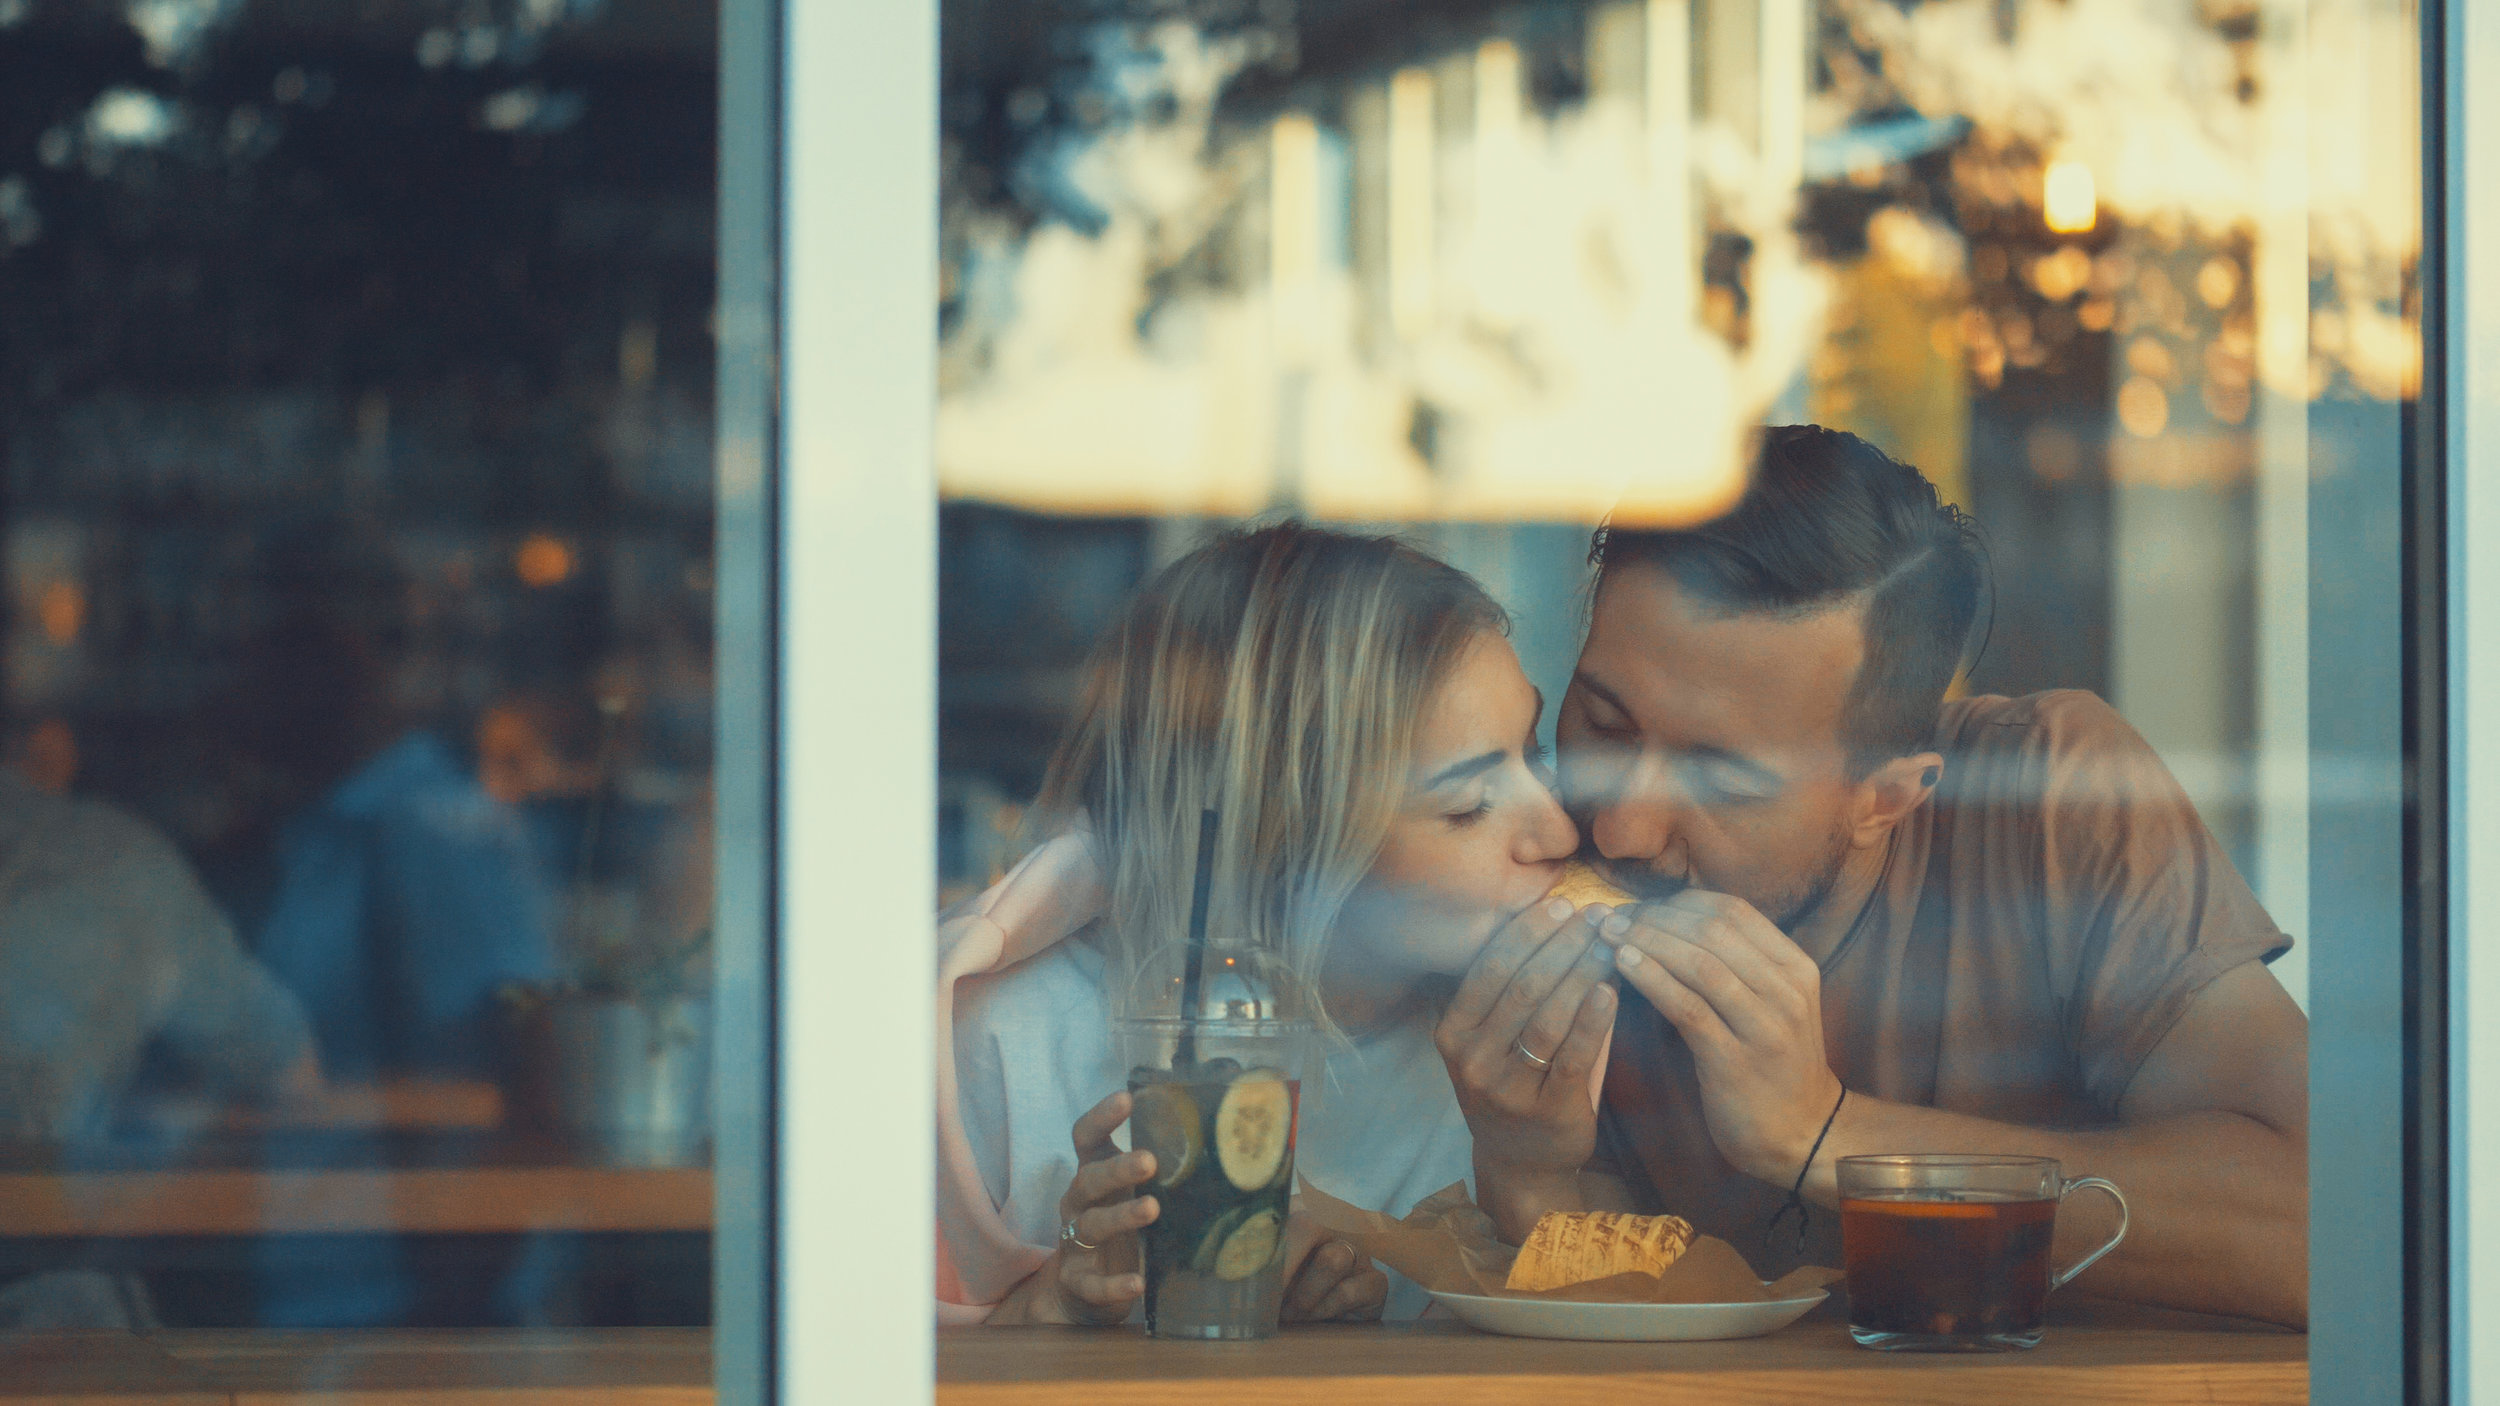 young-couple-in-a-cafe-PS527Y9.jpg